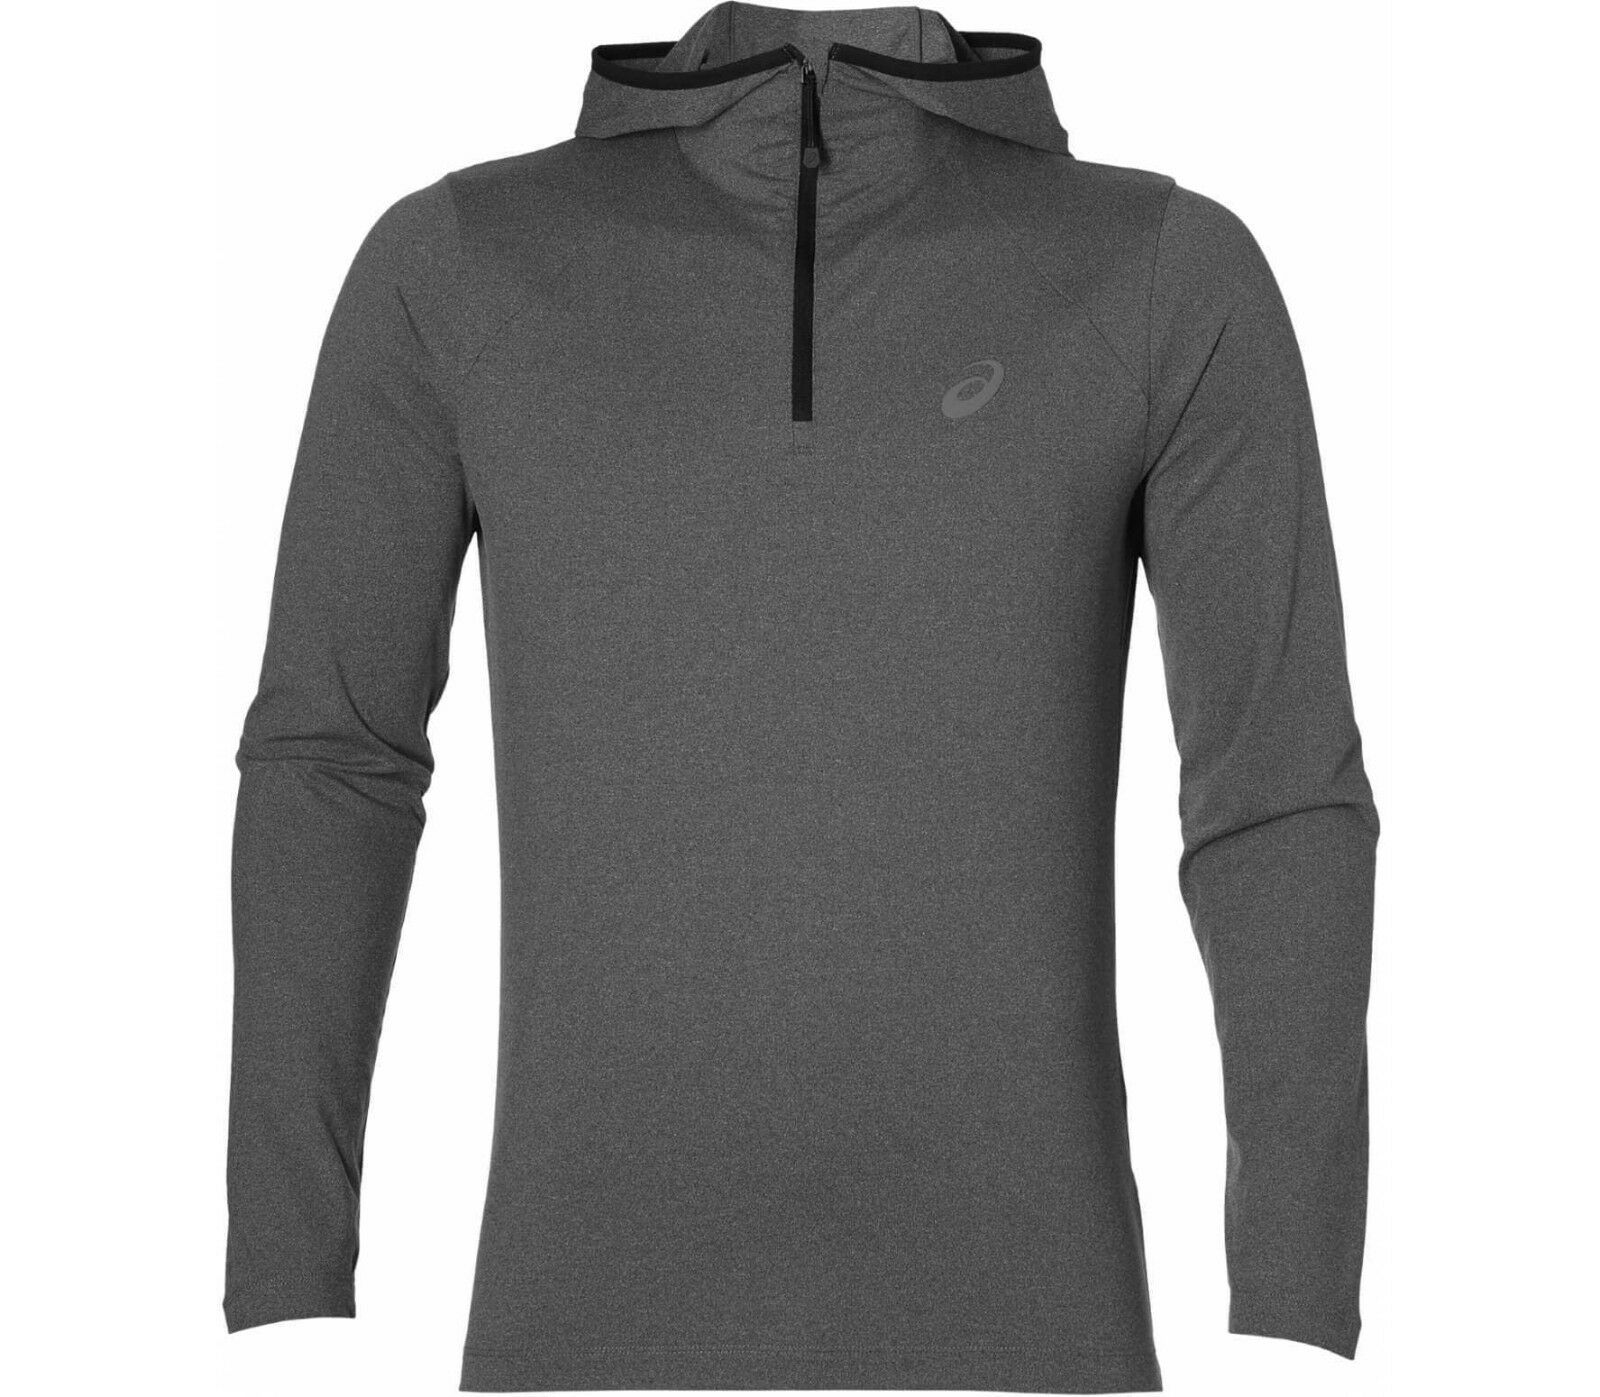 Asics Hoodie Large Grey Long Sleeve  Running Top TD091 CC 05  top brand